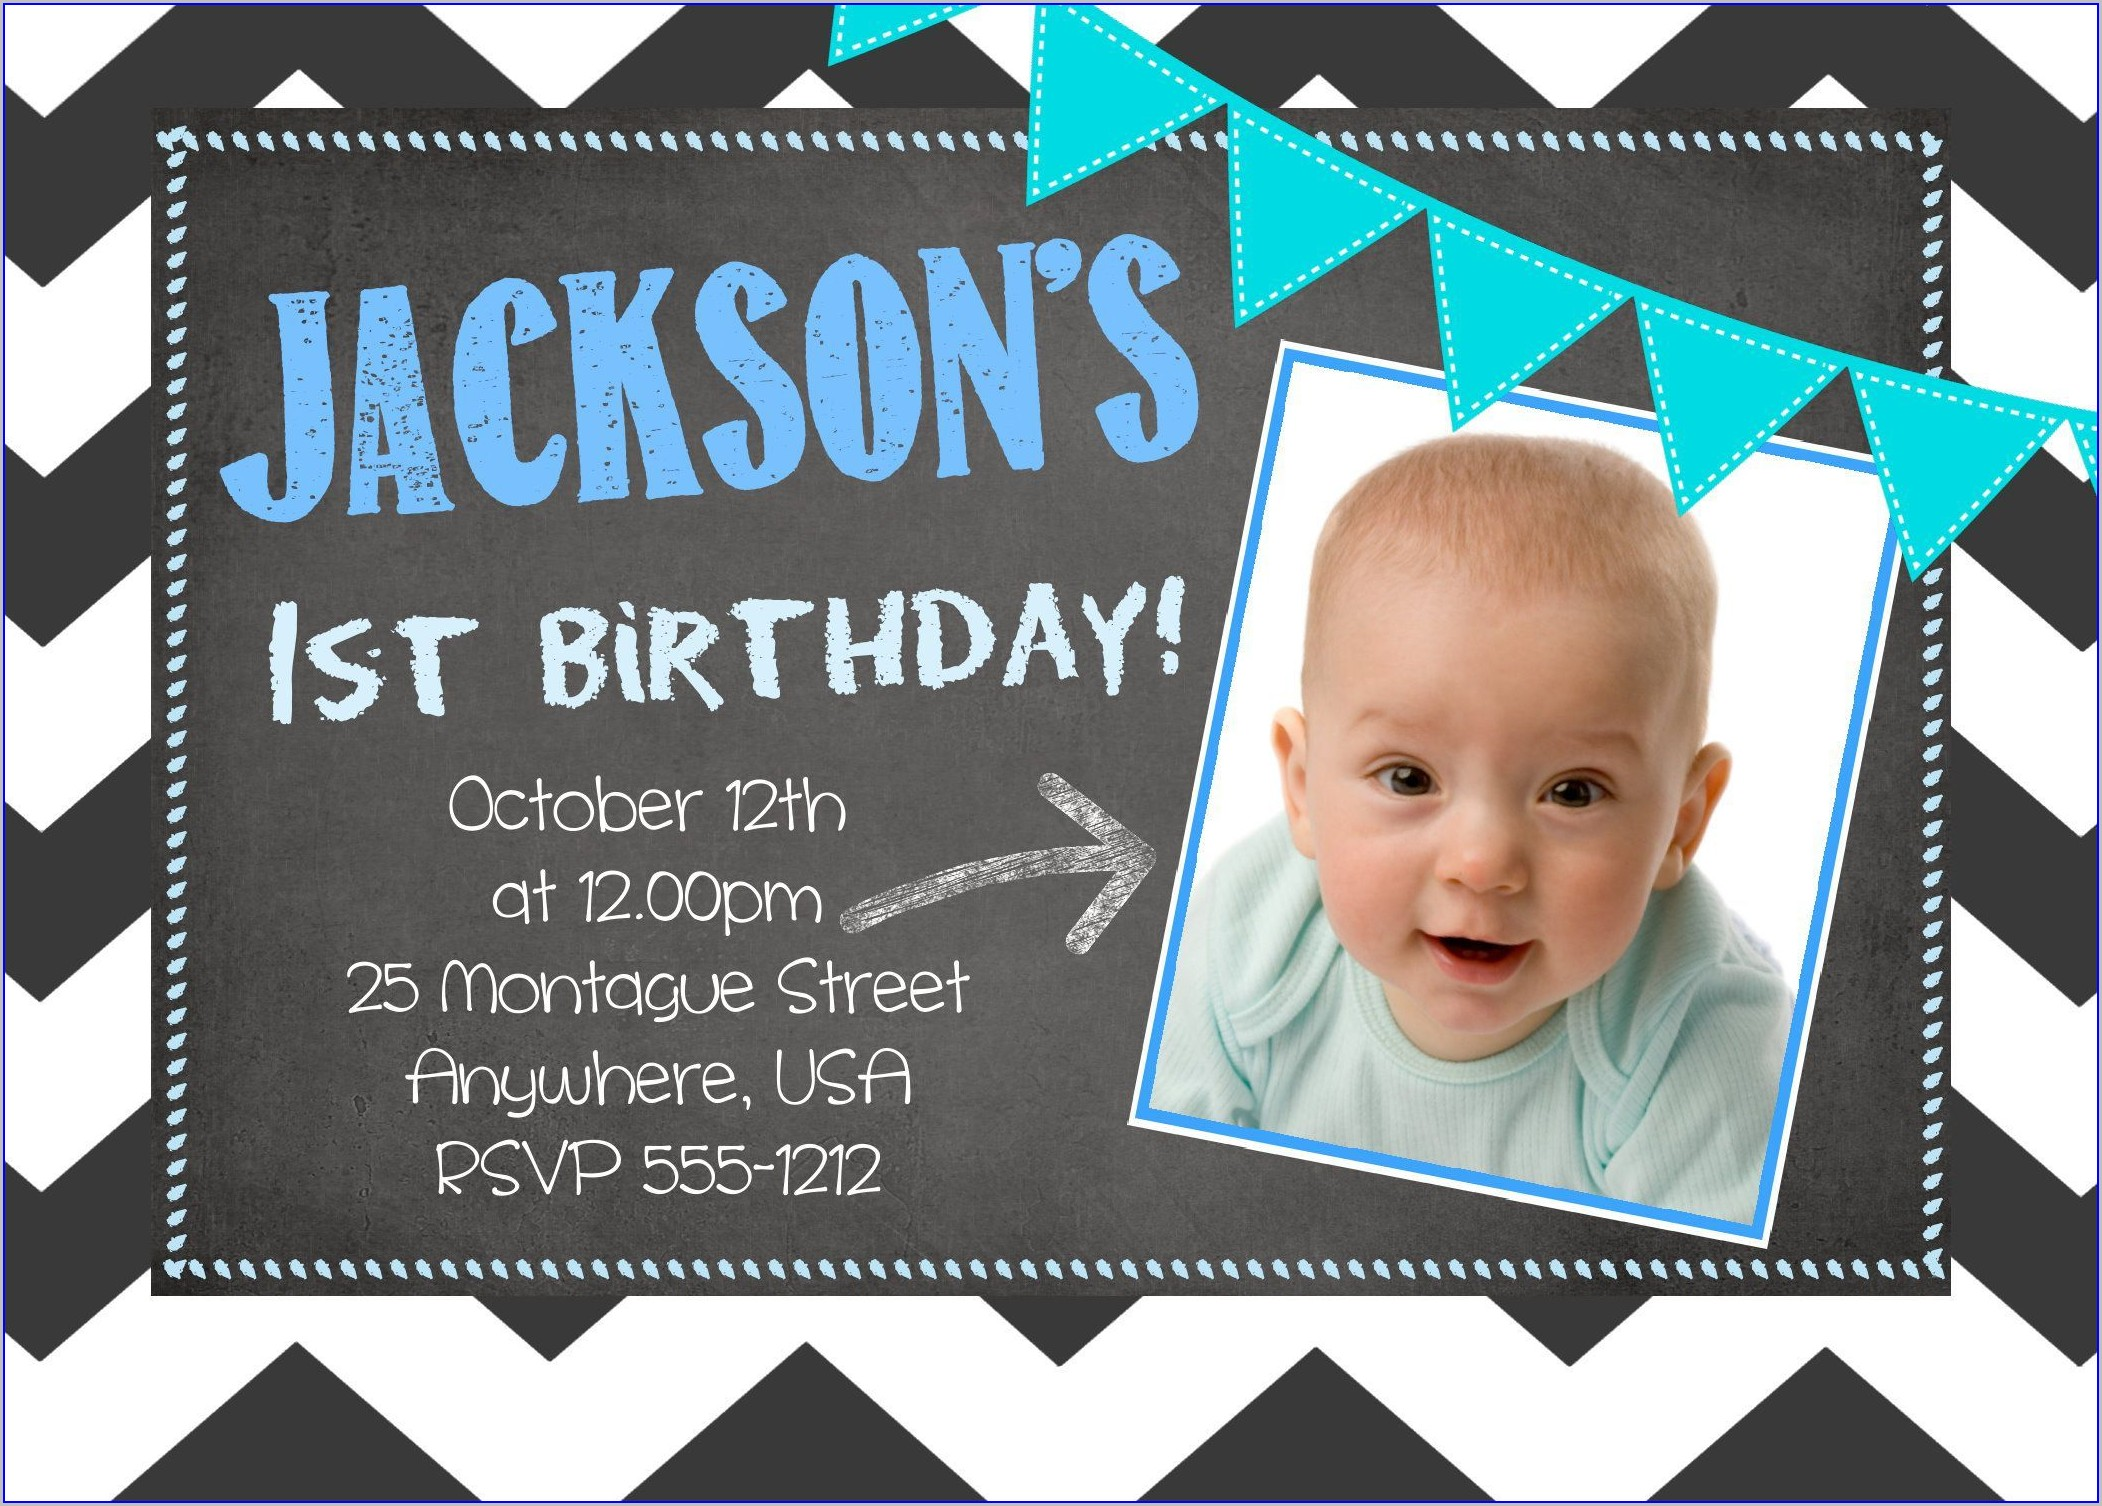 1st Birthday Invitation Wording For Baby Boy